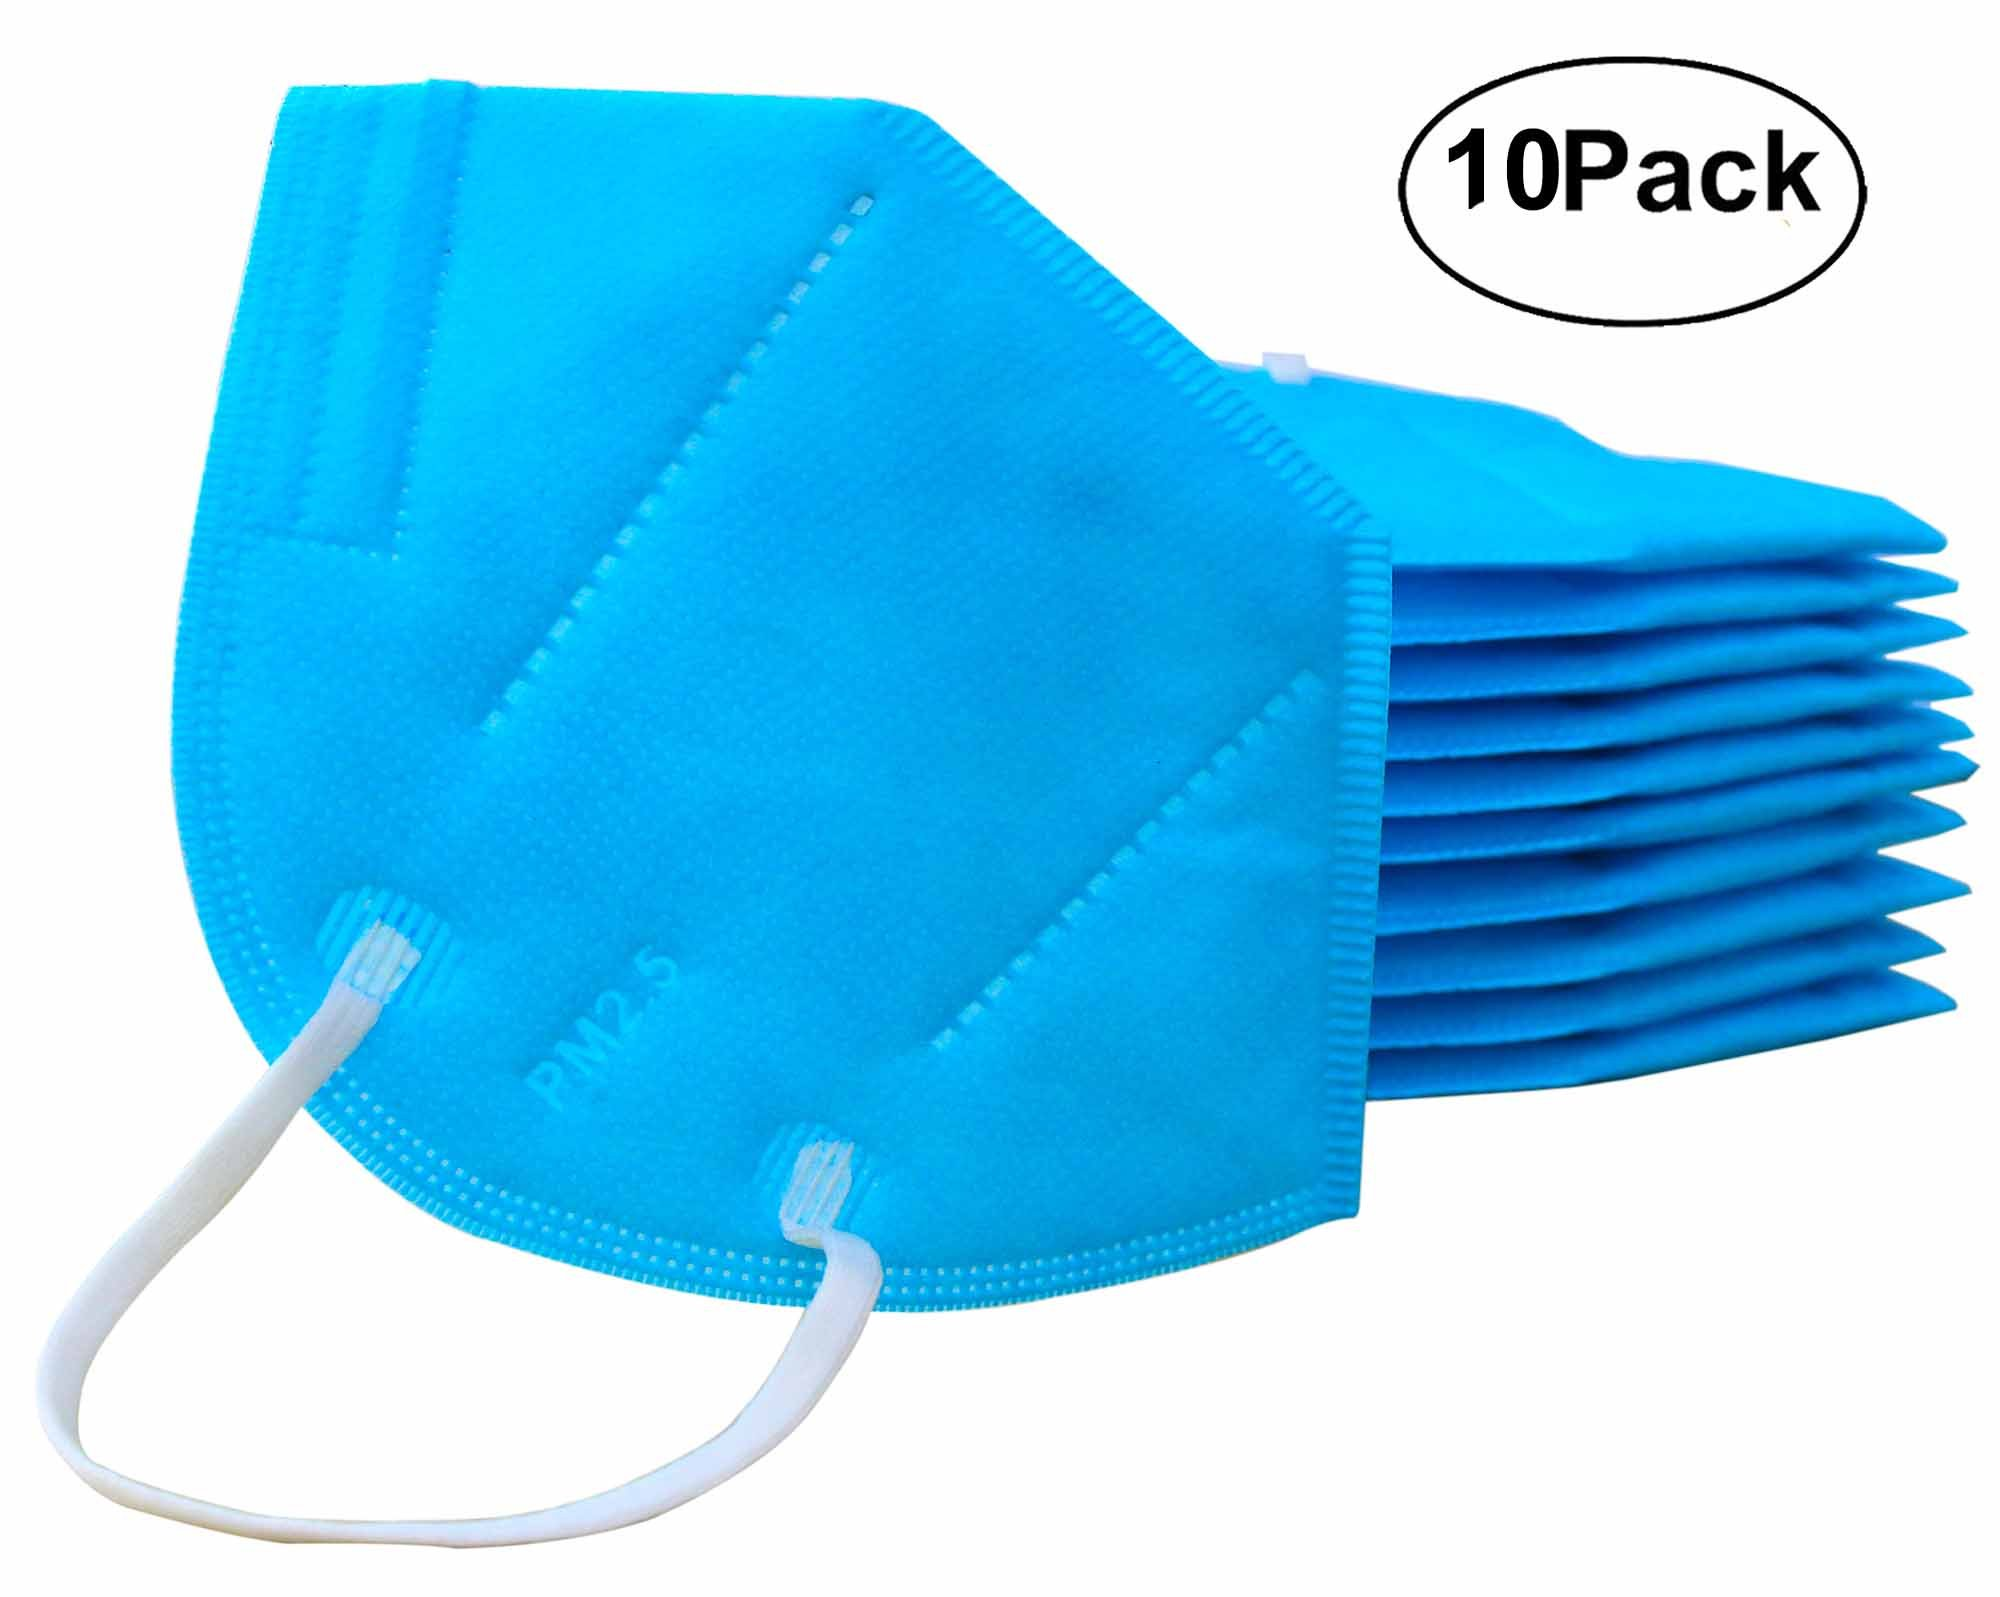 Respirator Mouth Mask Anti Pollution Mask Unisex Outdoor Protection N95 4 Layer Filter Insert Anti Dust Mask with Valve Filter KZ27